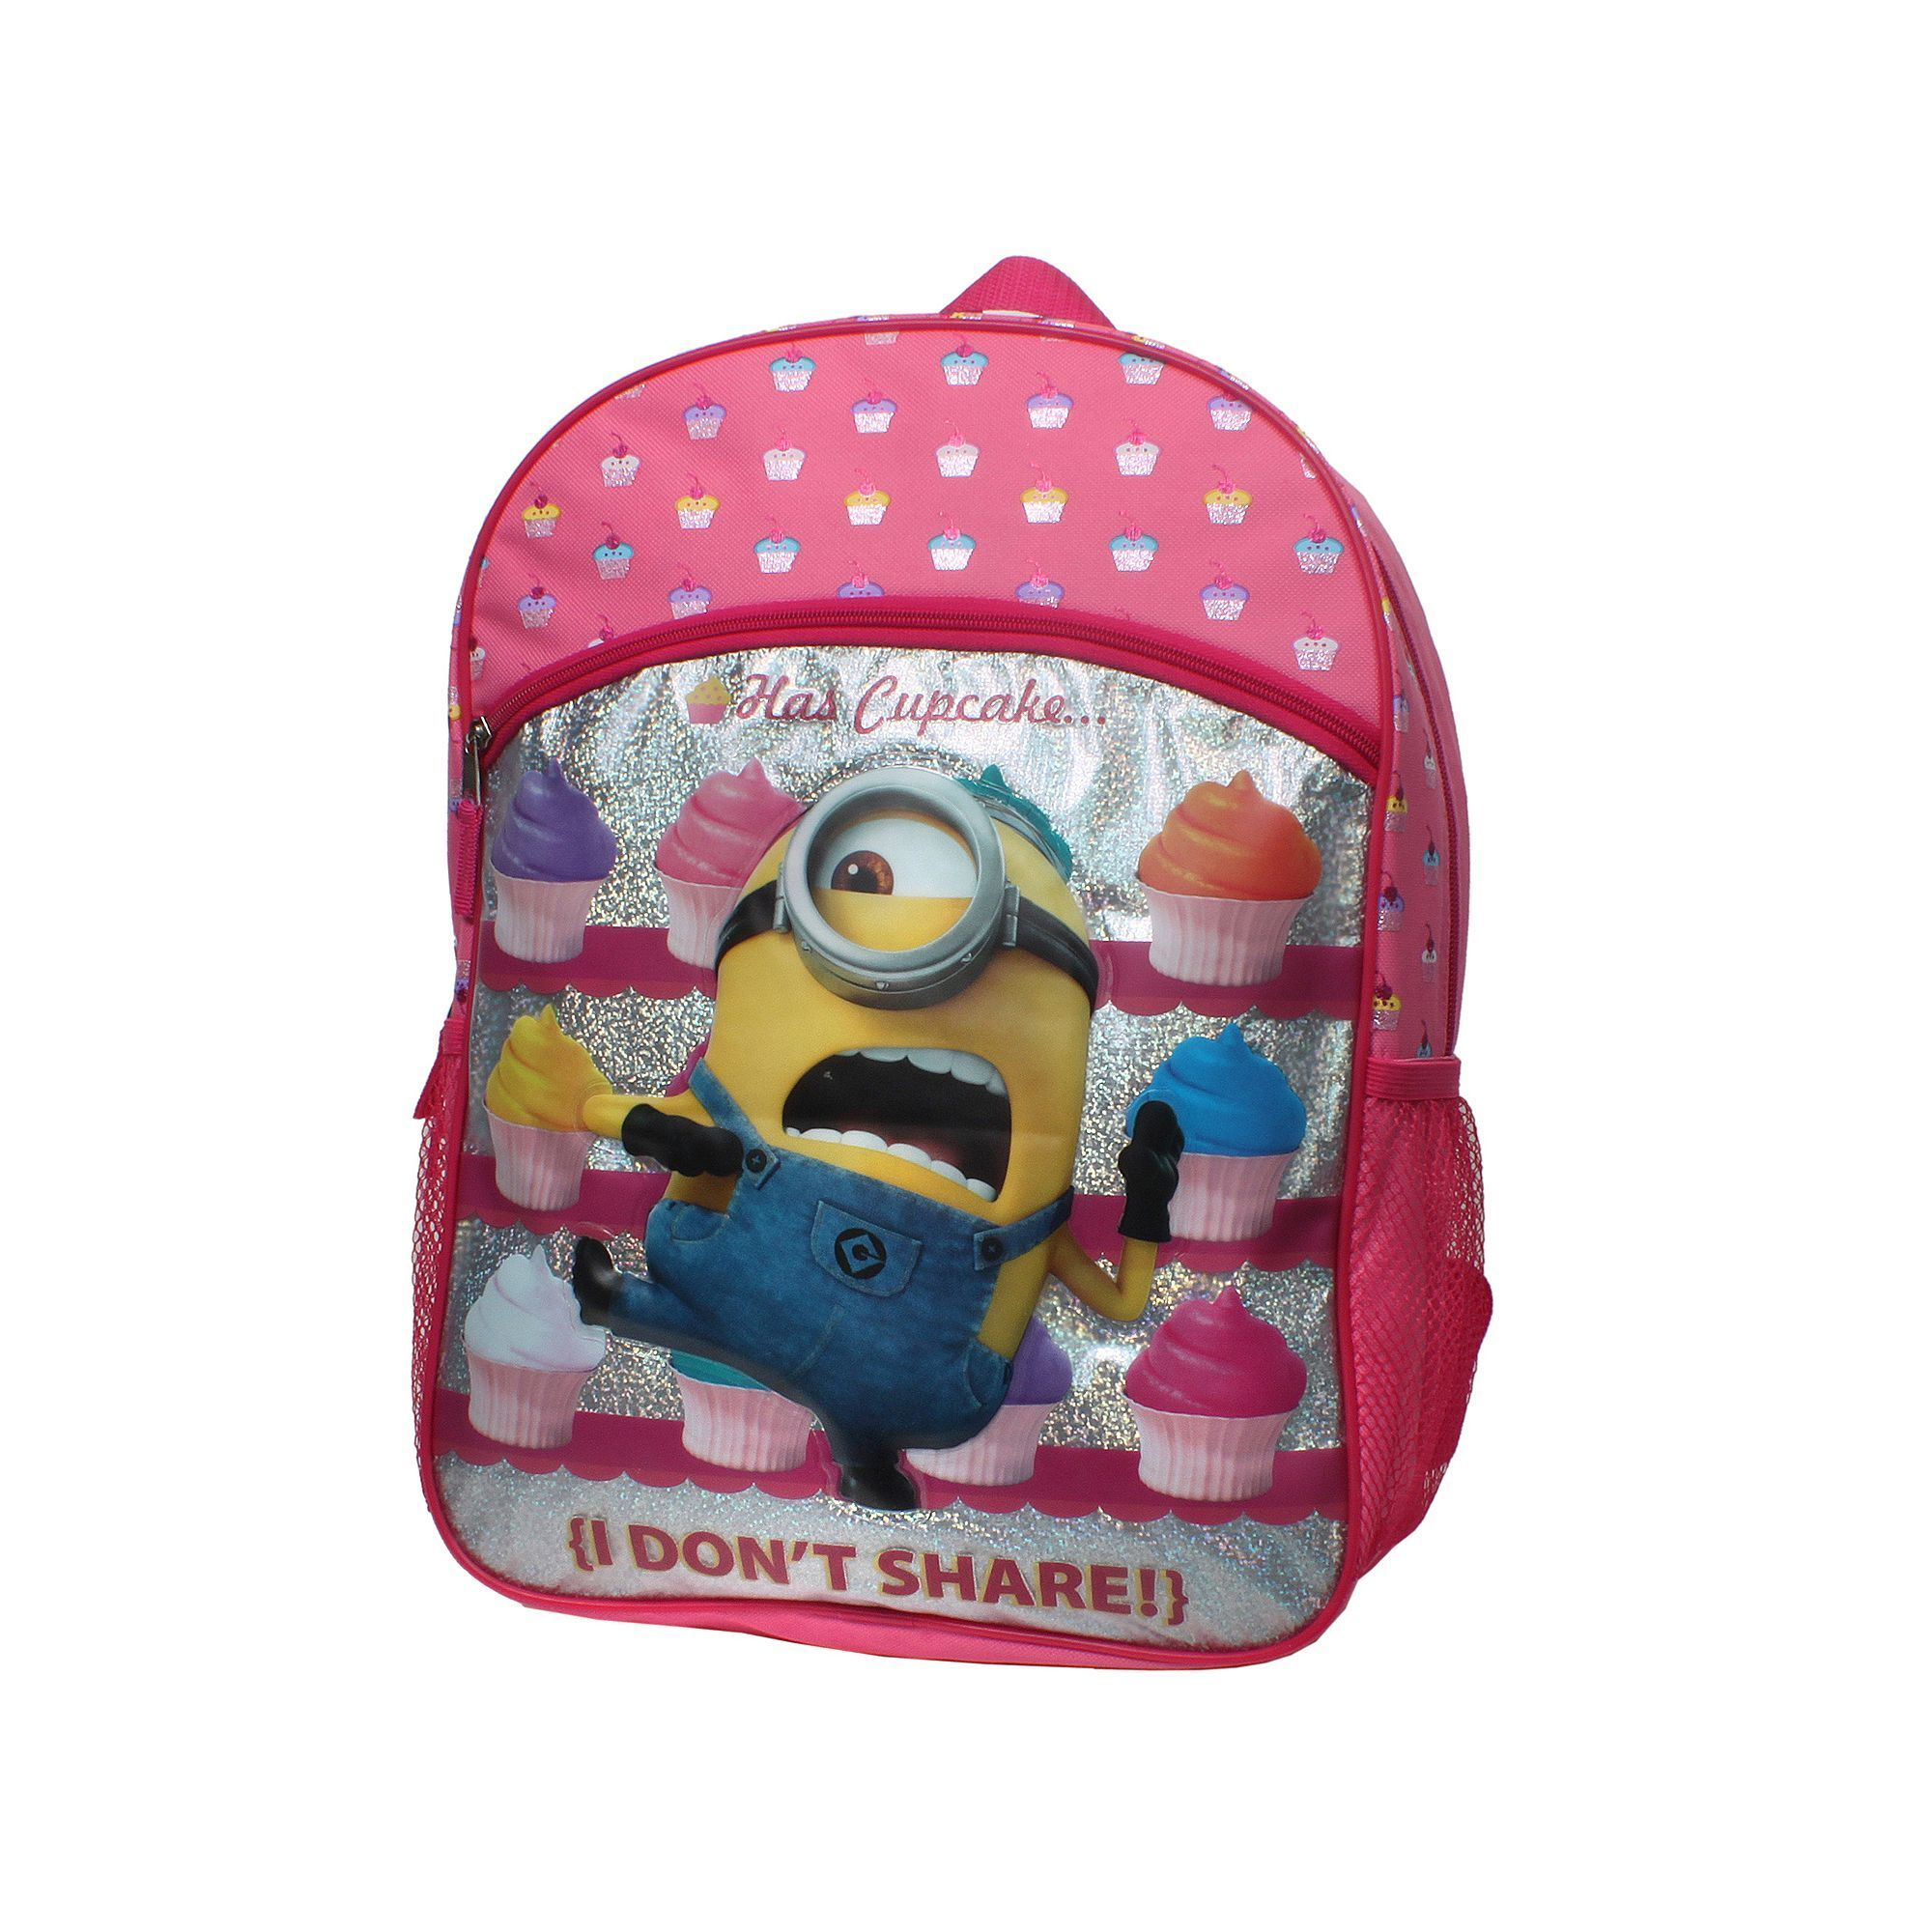 Kids Despicable Me Minions Cupcake Backpack  5985d6901811e